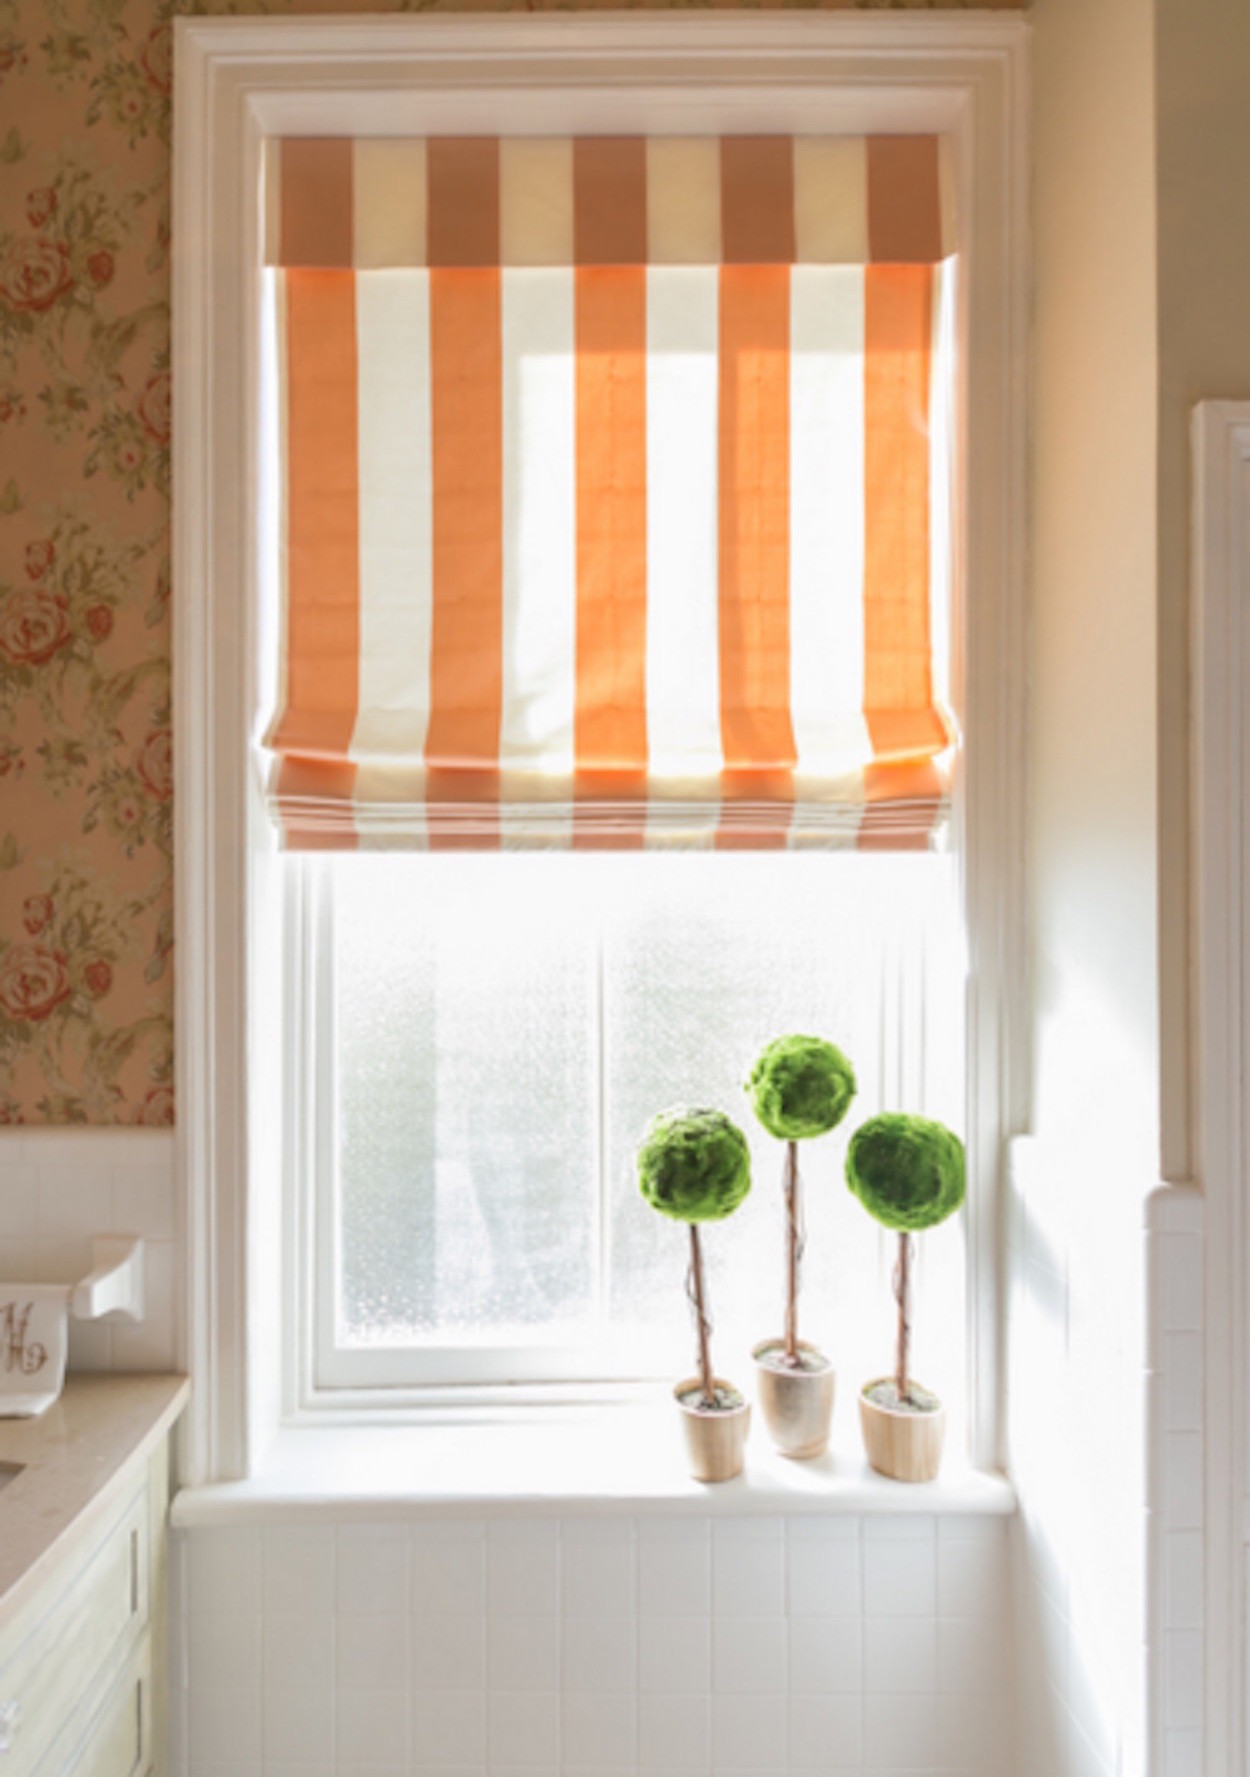 7 different bathroom window treatments you might not have thought of martha stewart - Window Treatment Ideas